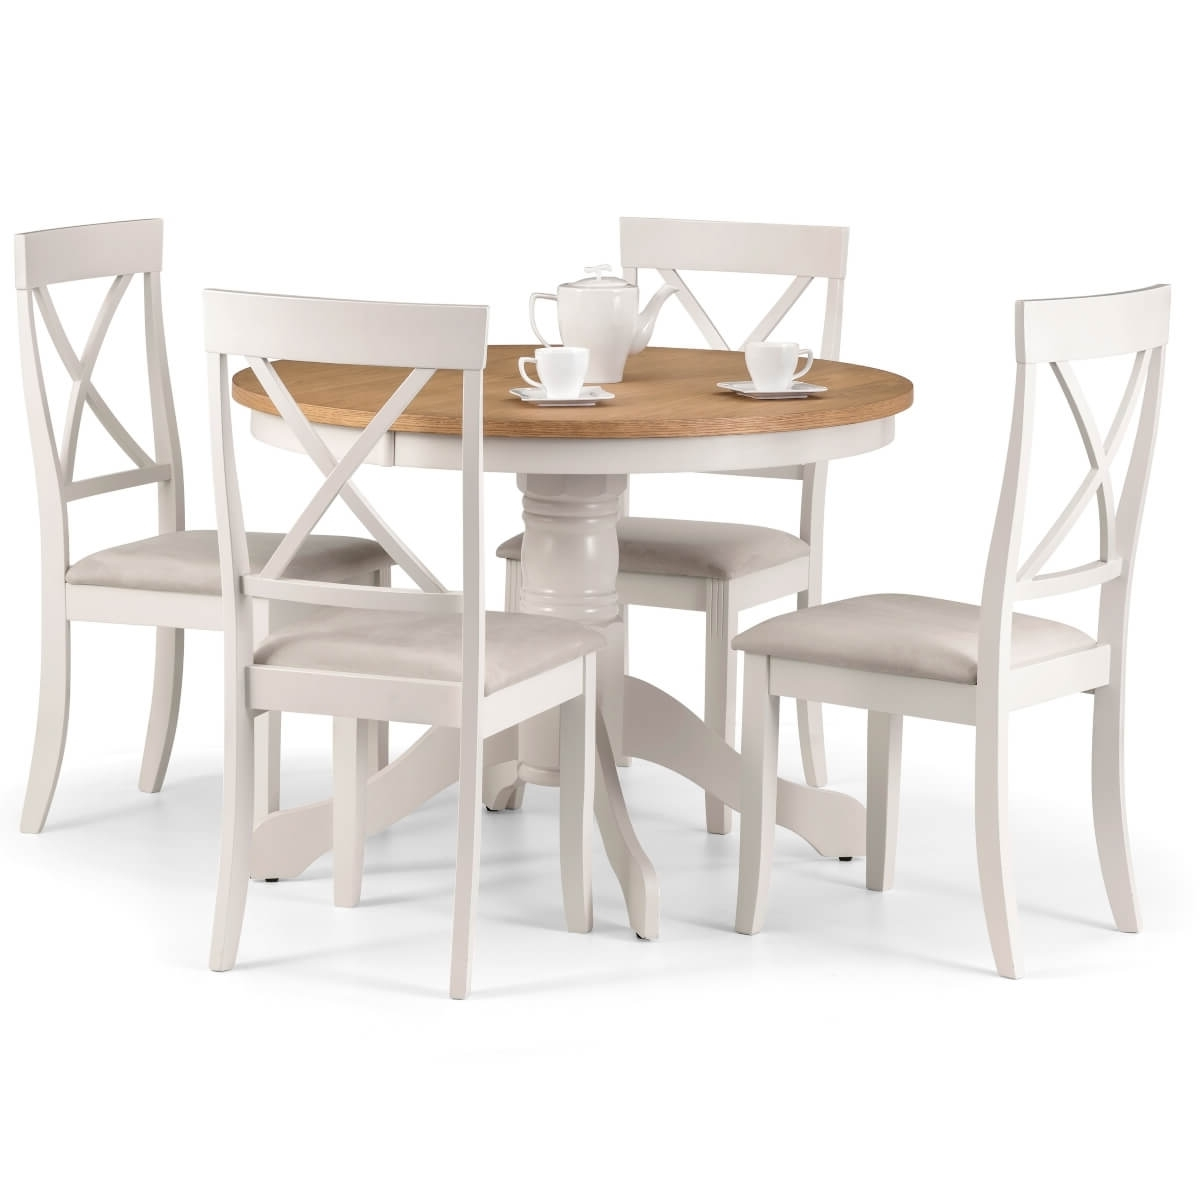 Round Oak Dining Tables And 4 Chairs Pertaining To Fashionable Dining Set – Davenport Dining Table And 4 Chairs In Ivory Oak Dav (View 18 of 25)